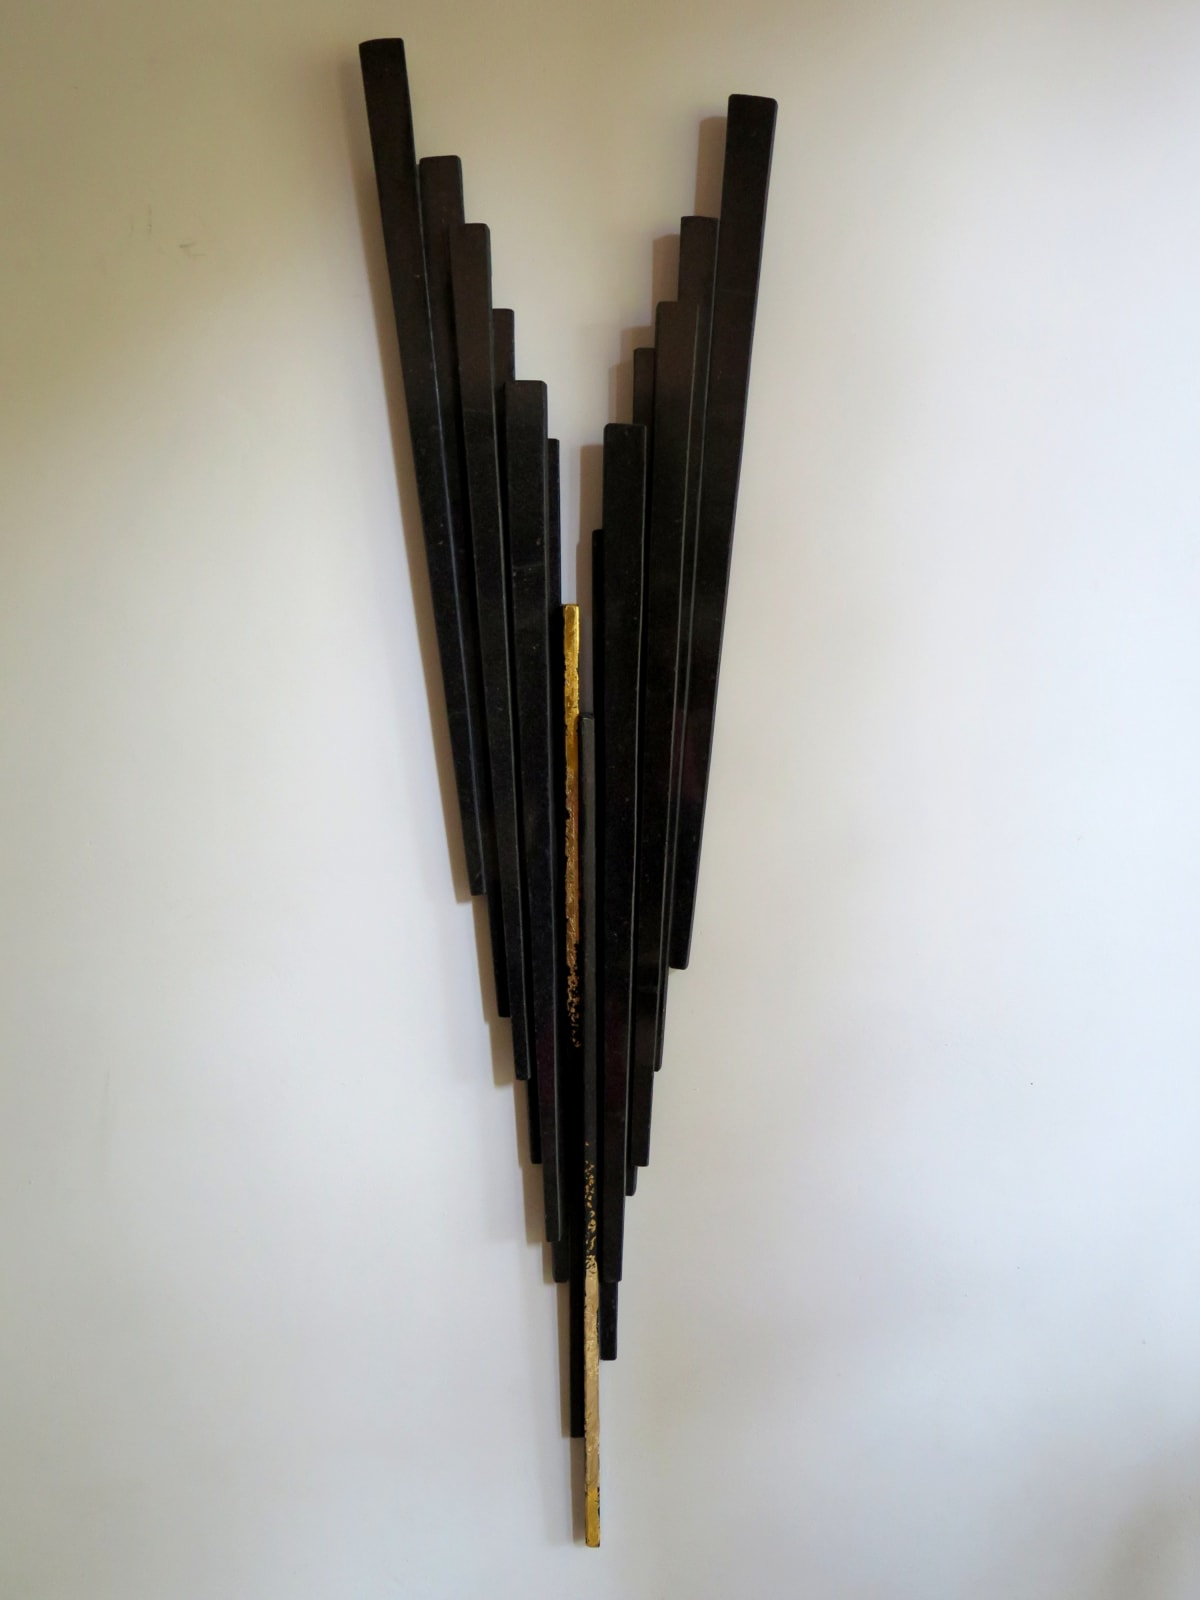 Gioni David Parra Bladelight Concert monumentale IX, 2018 Black granite and gold leaf. 178 x 46.7 x 7 cm (70.1 x 18.4 x 2.8 in)